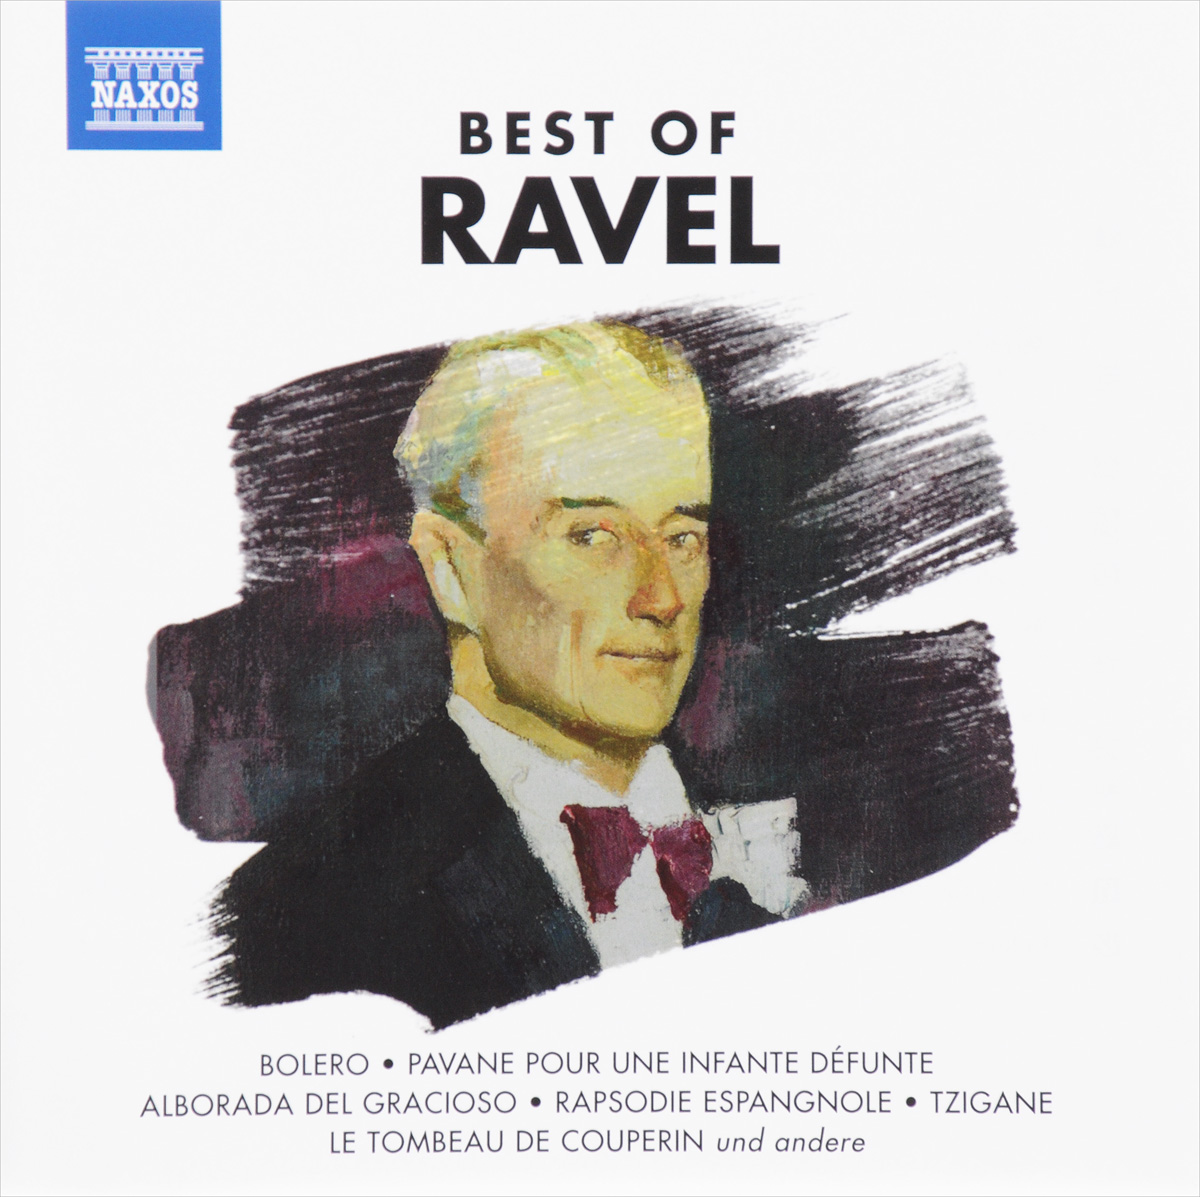 Slovak Radio Symphony Orchestra,Паскаль Девун,Франсуа-Жоэль Тиойе,Kodaly Quartet,The Royal Philharmonic Orchestra Best Of Ravel джиорджио кроки хериберт байссель зольт дики евгений светланов антон нанут slovak philharmonic orchestra moscow rtv symphony orchestra 77 самых любимых мелодий mp3